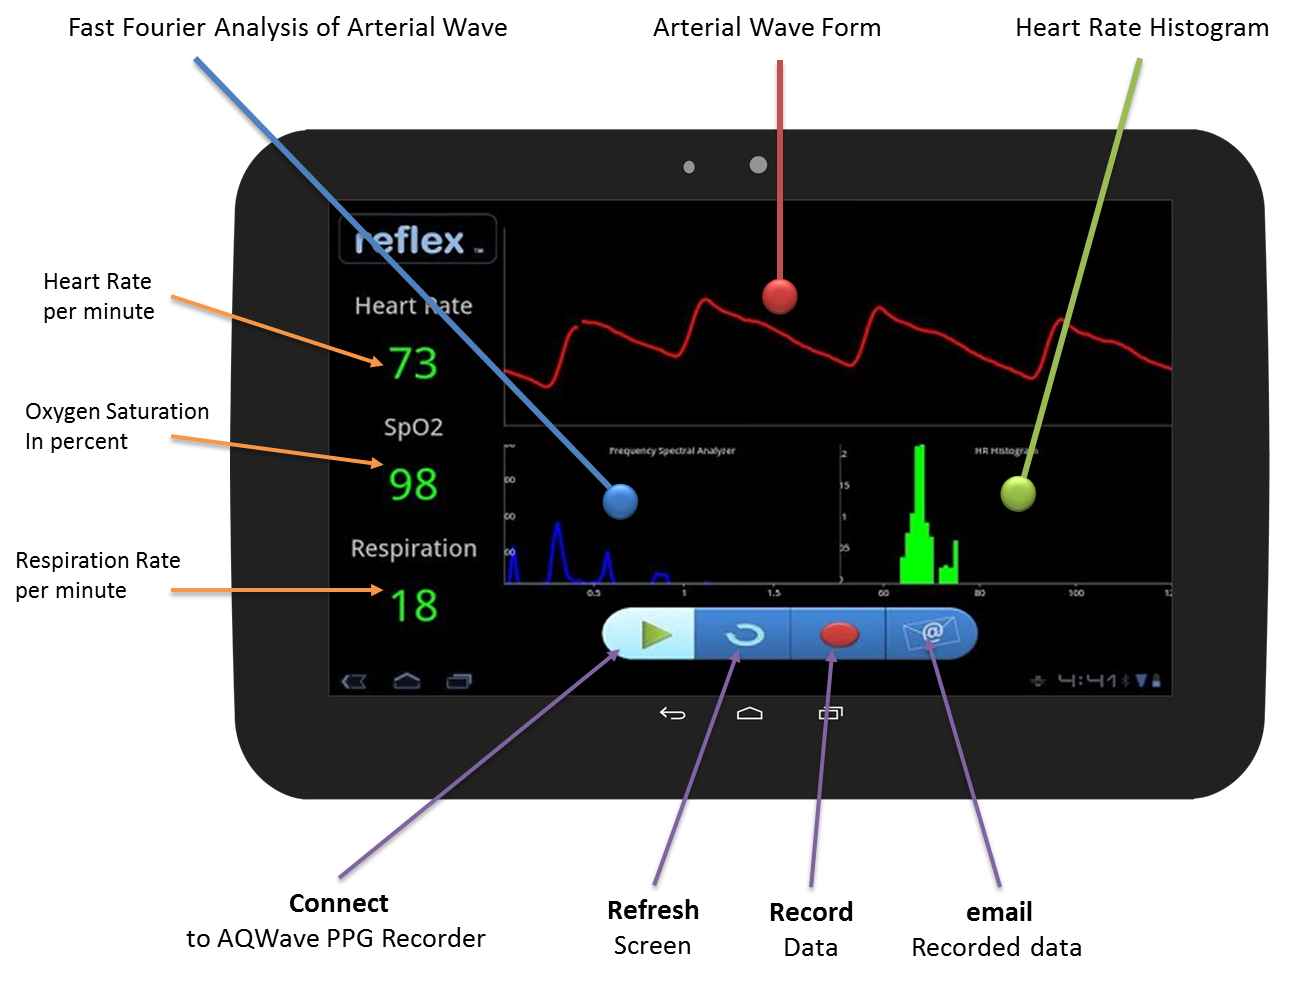 aqwave_analytics_labelled